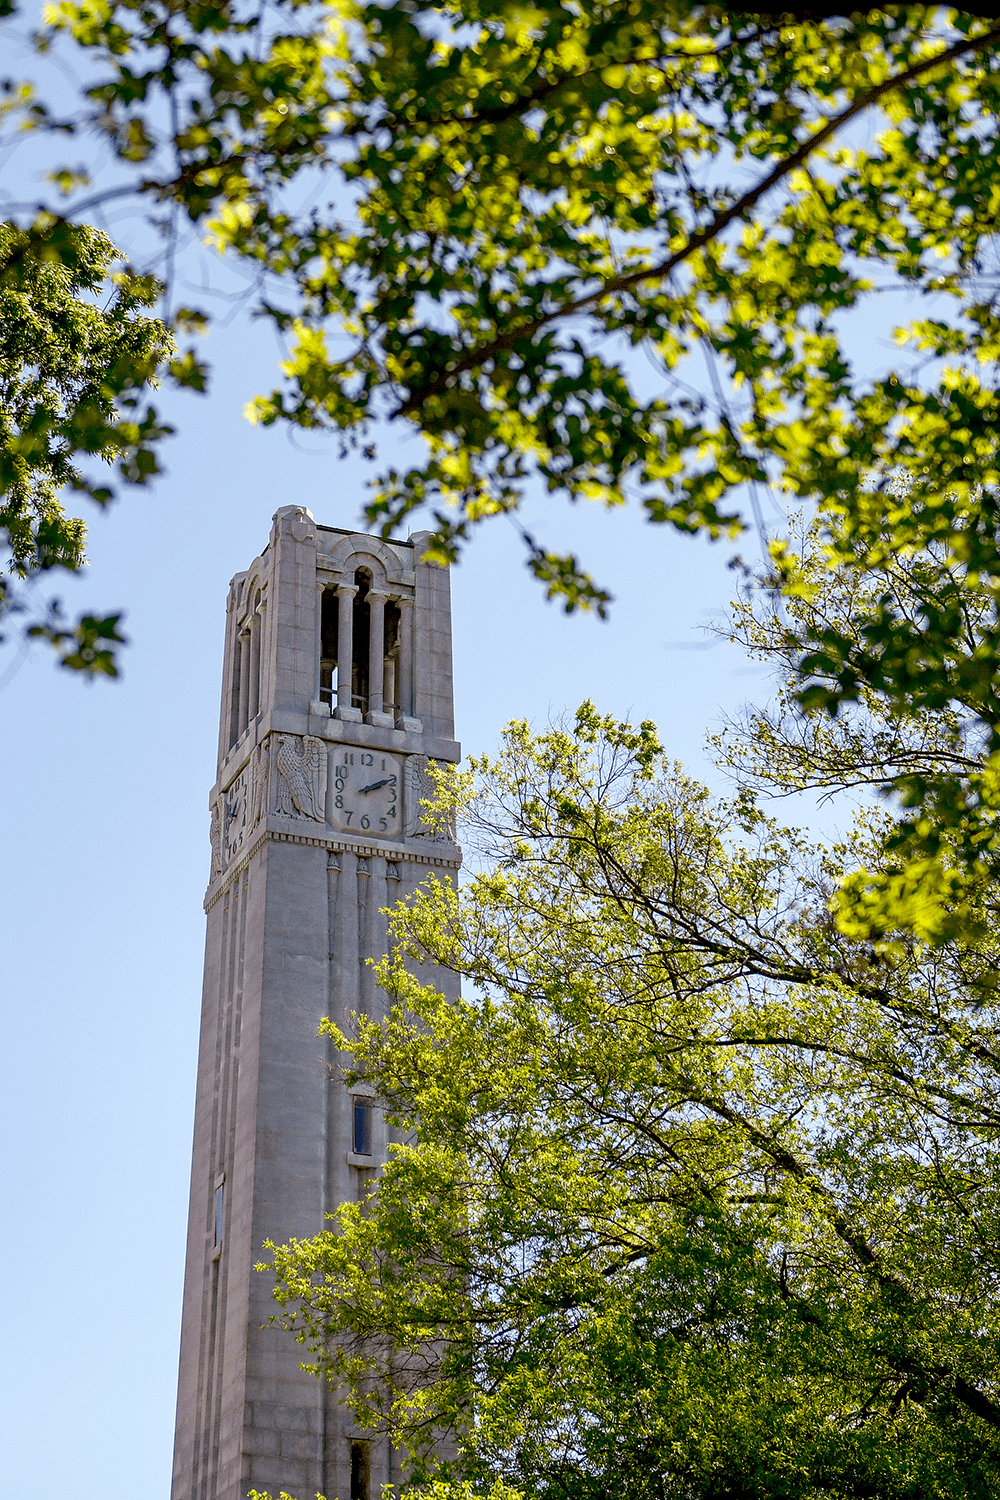 The Belltower on NC State's campus surrounded by trees on a sunny day.